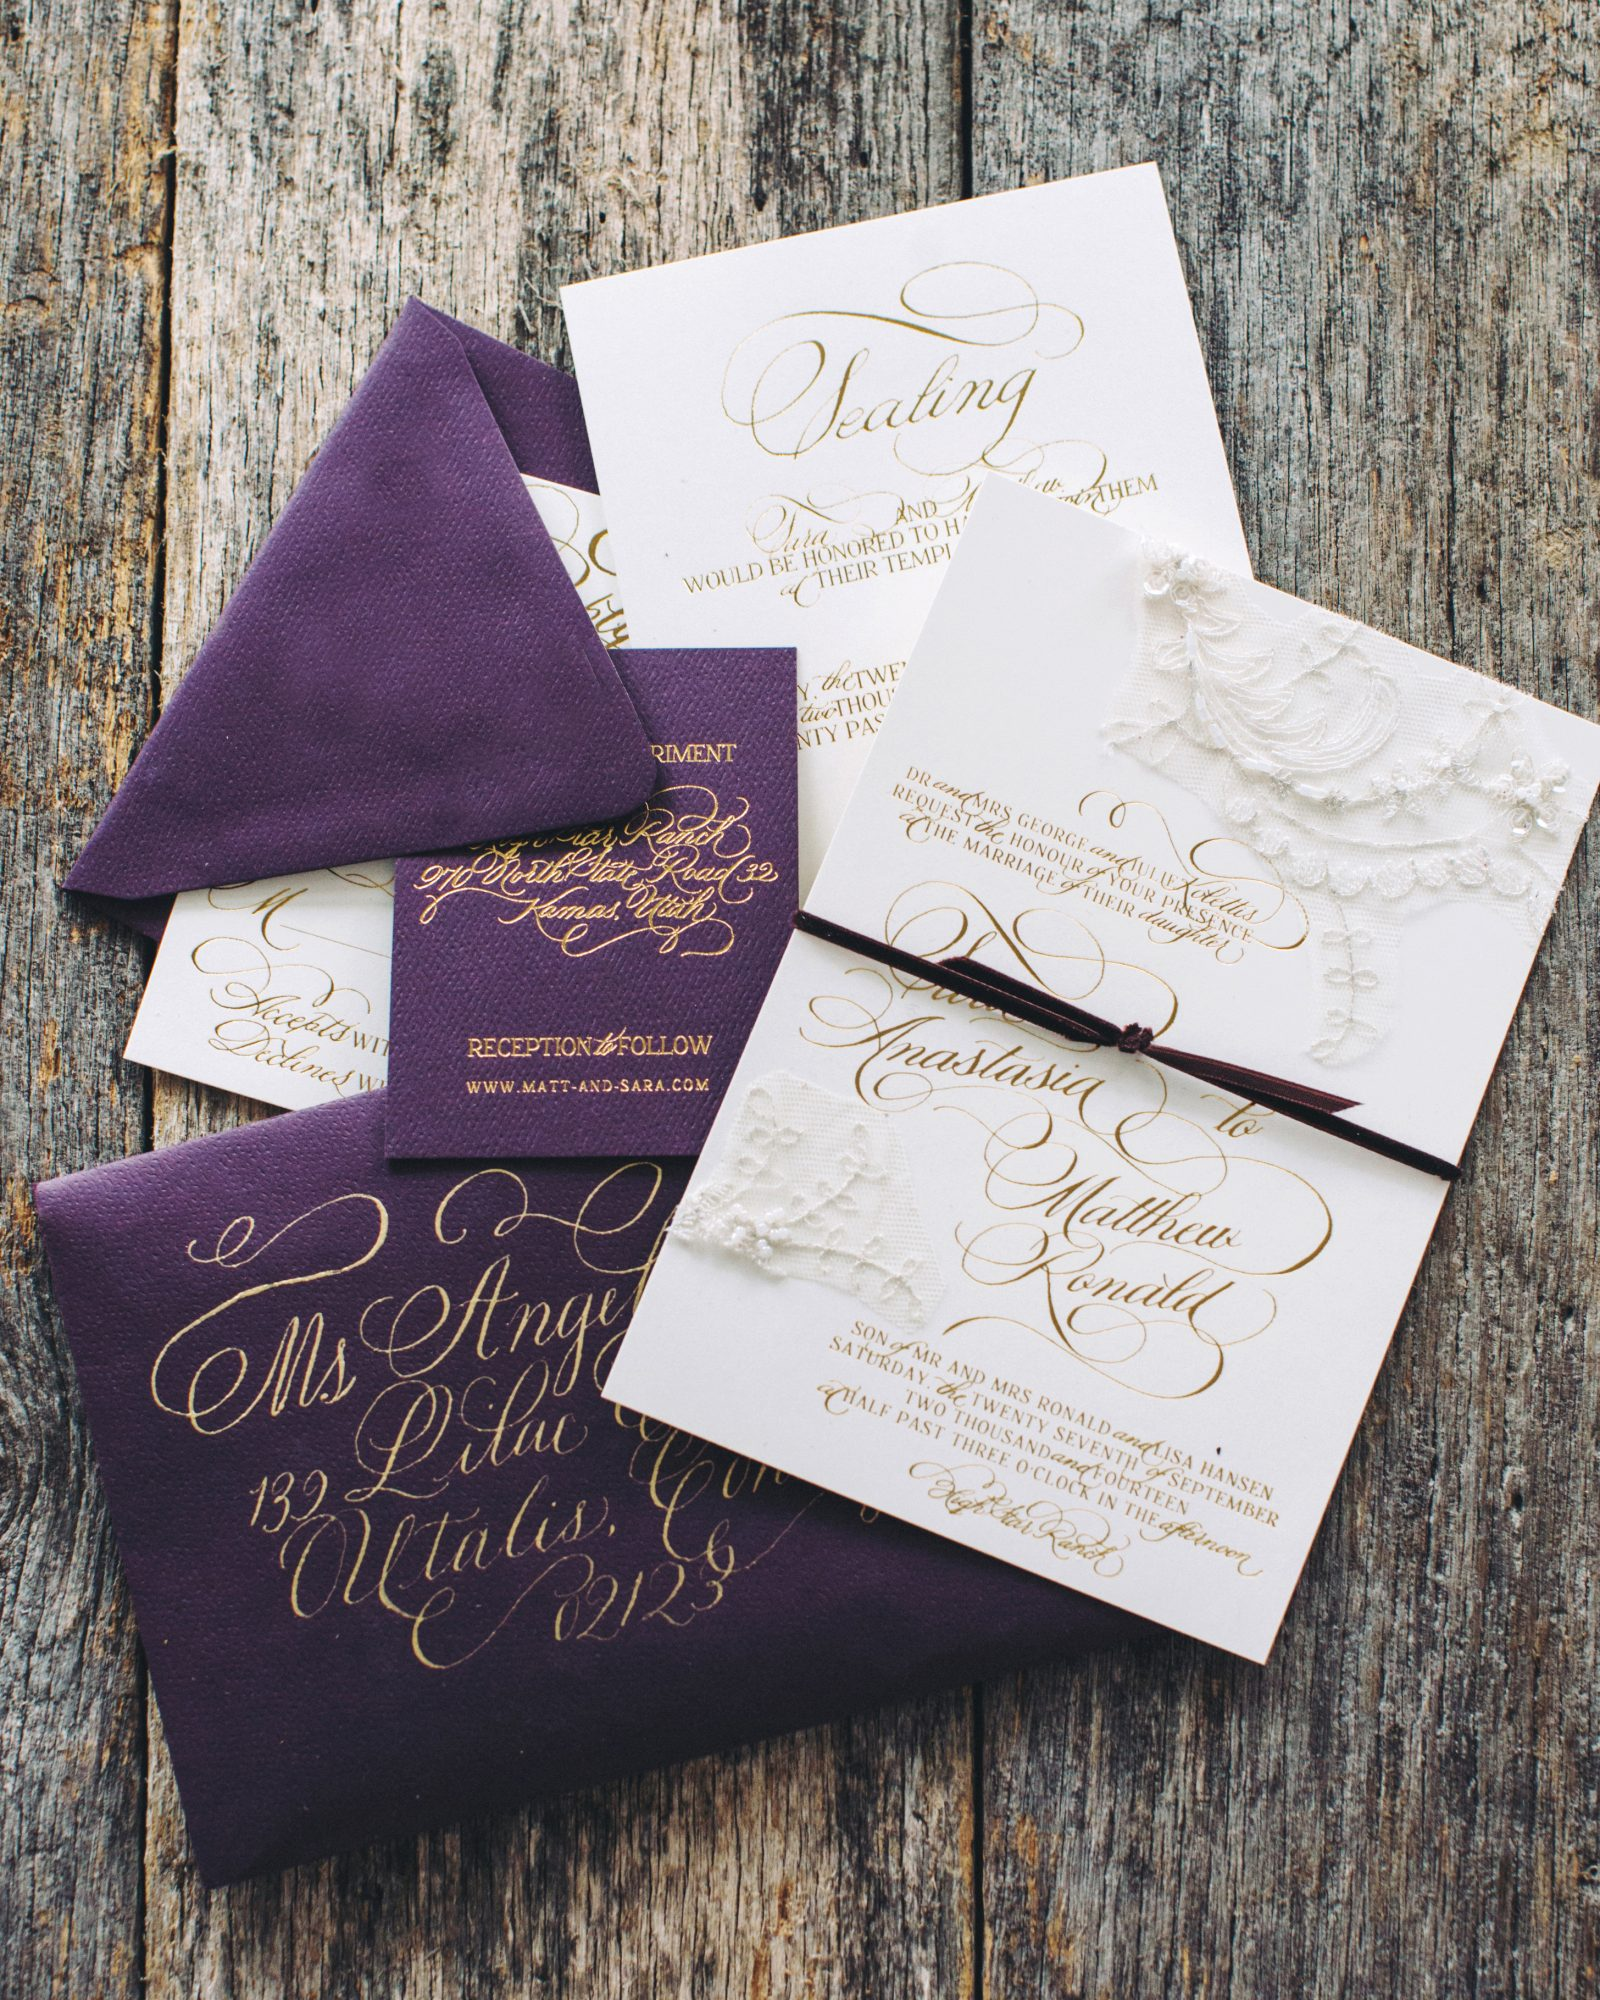 sara-matt-wedding-stationery-0098-s111990-0715.jpg